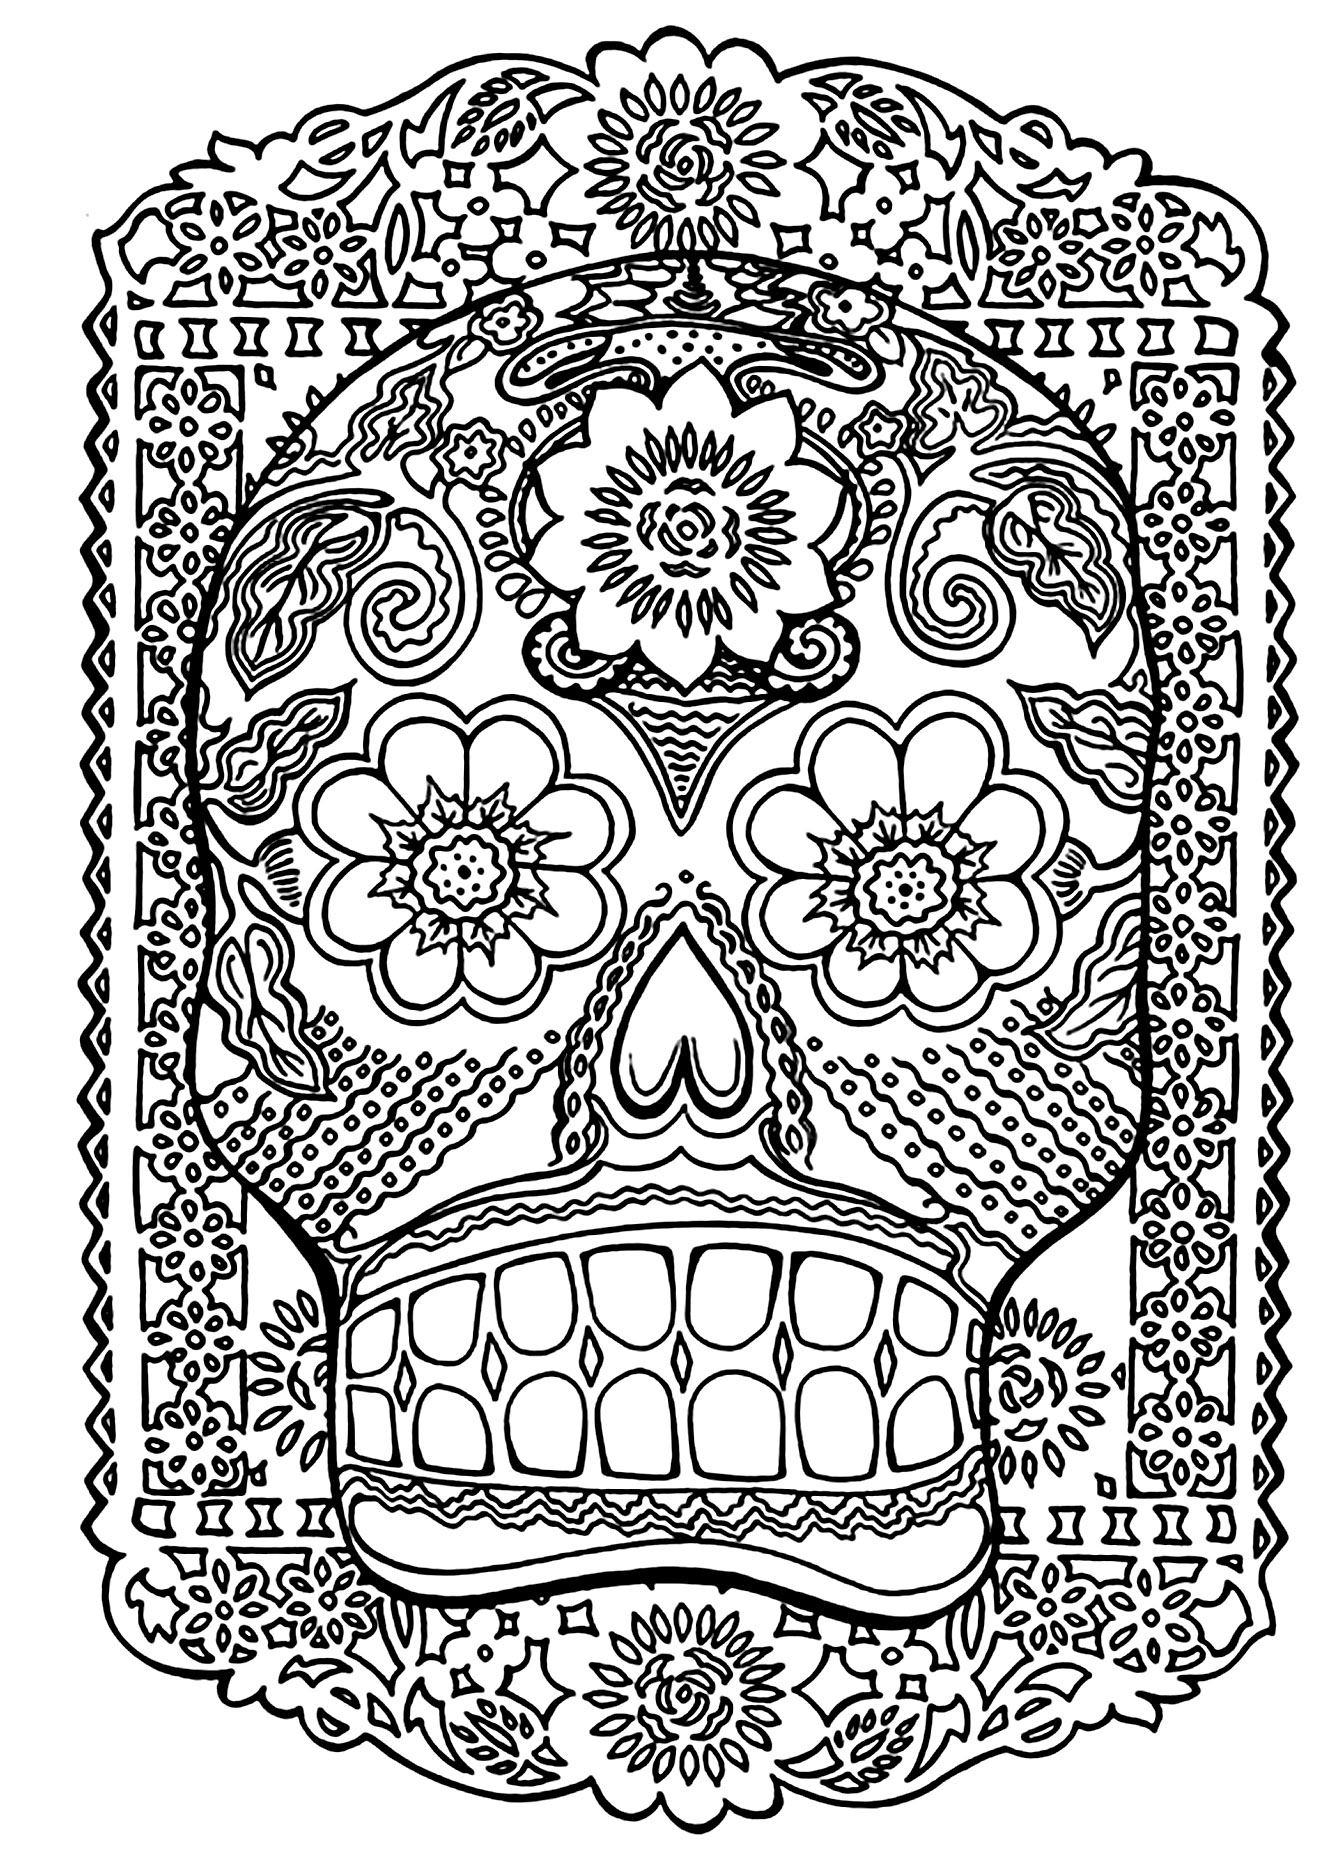 Tete de mort anti stress art th rapie coloriages - Tete de pirate dessin ...